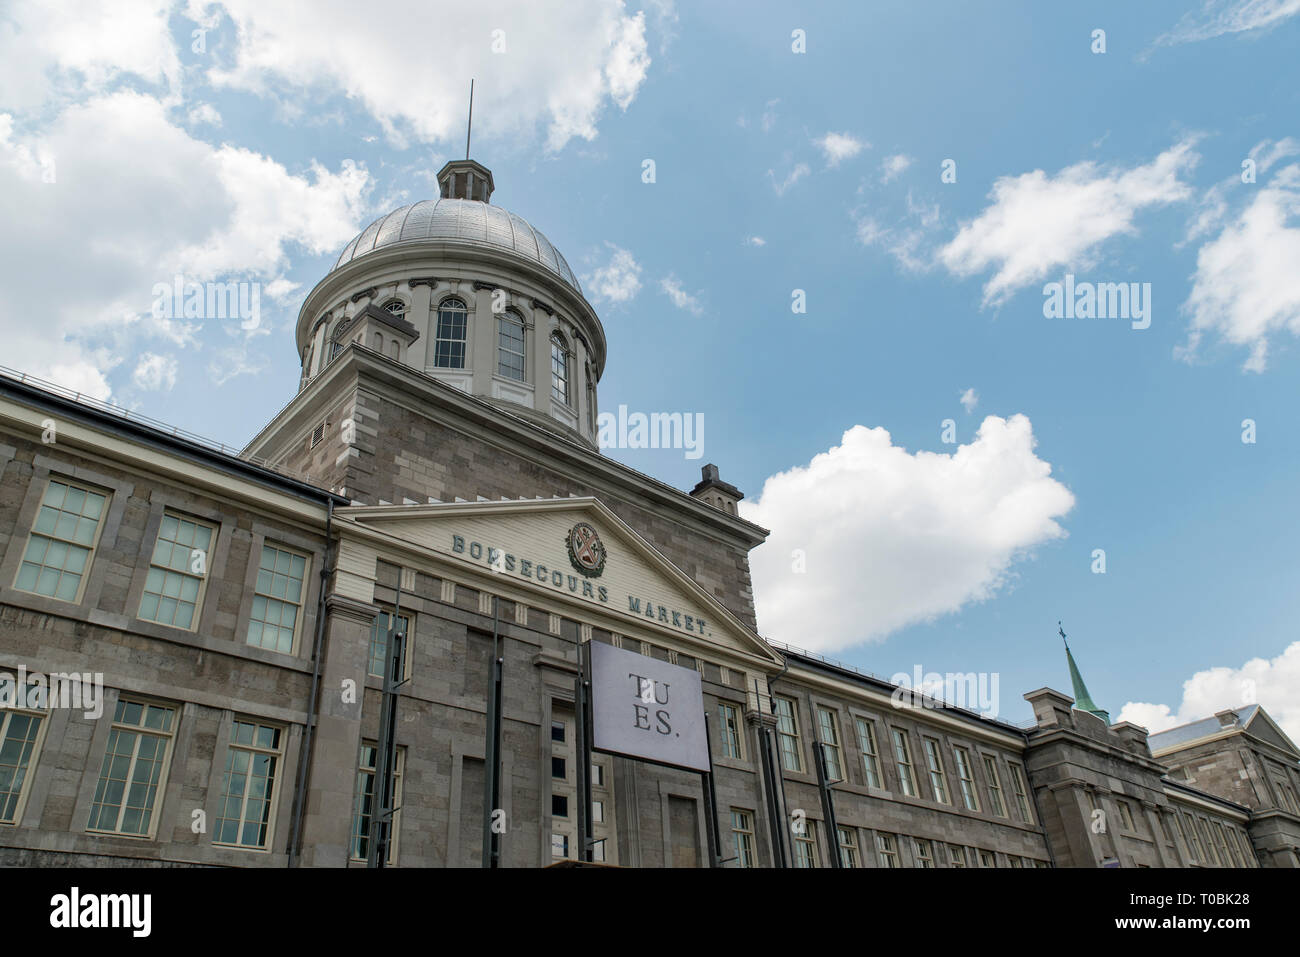 Montreal, Quebec, Canada.  Bonsecours Market as viewed from Rue de la Commune East in Old Montreal, oblique view. - Stock Image